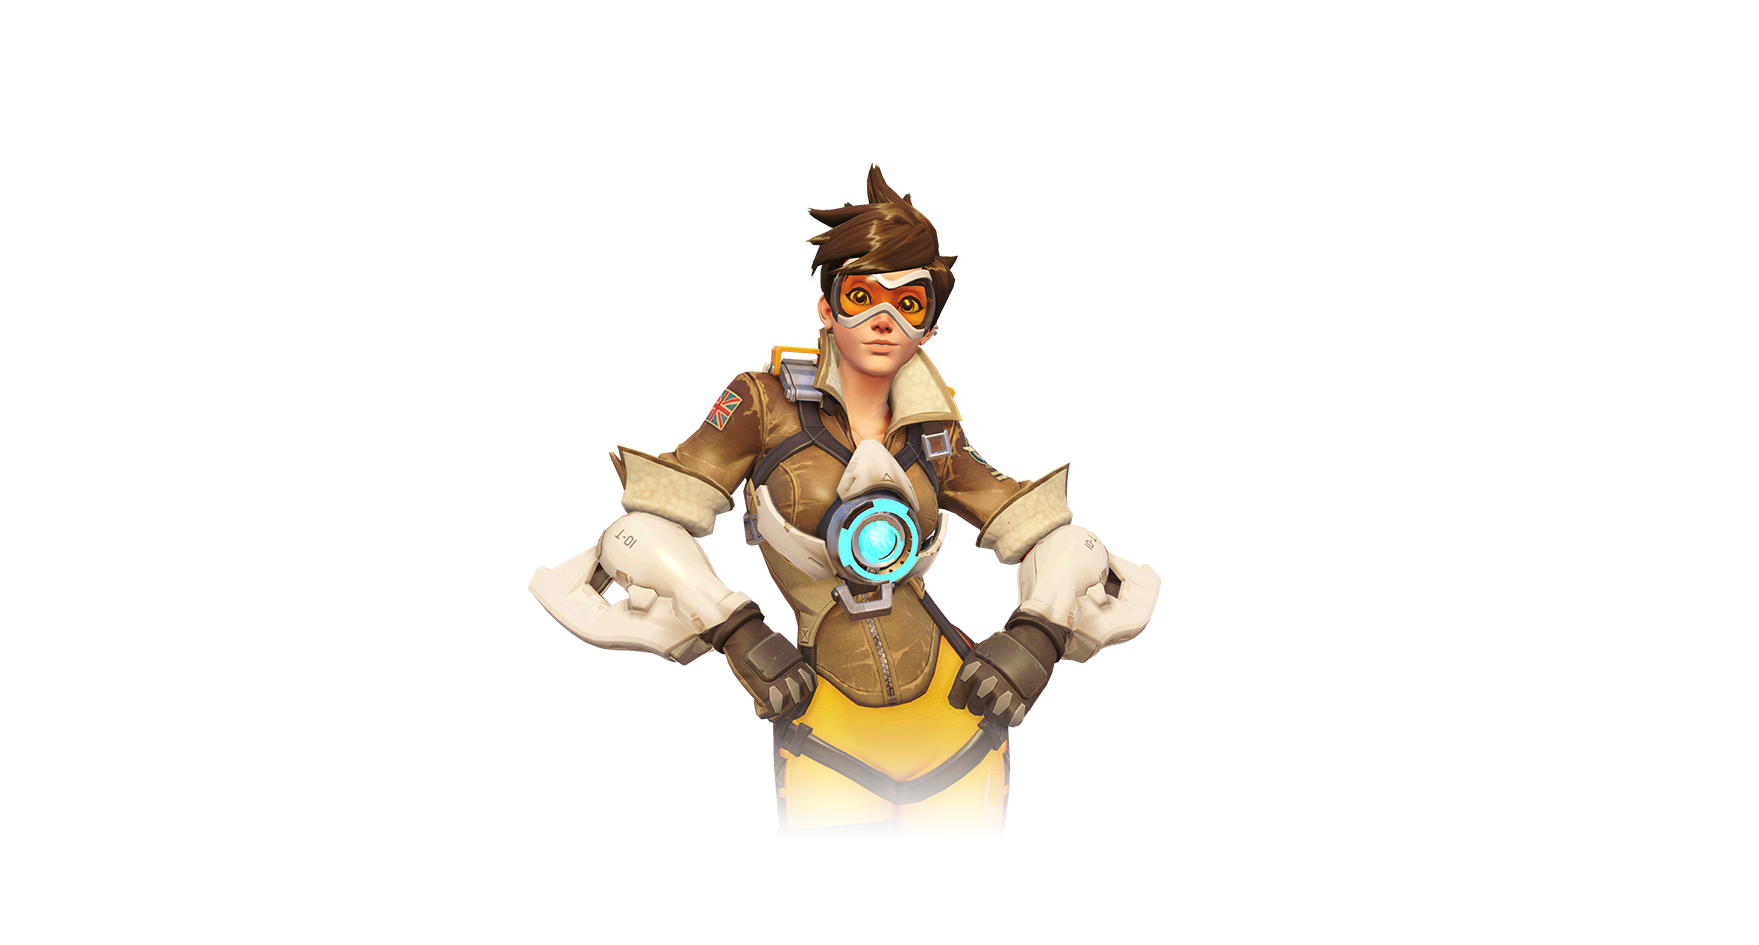 Goggles transparent tracer. Overwatch characters background album